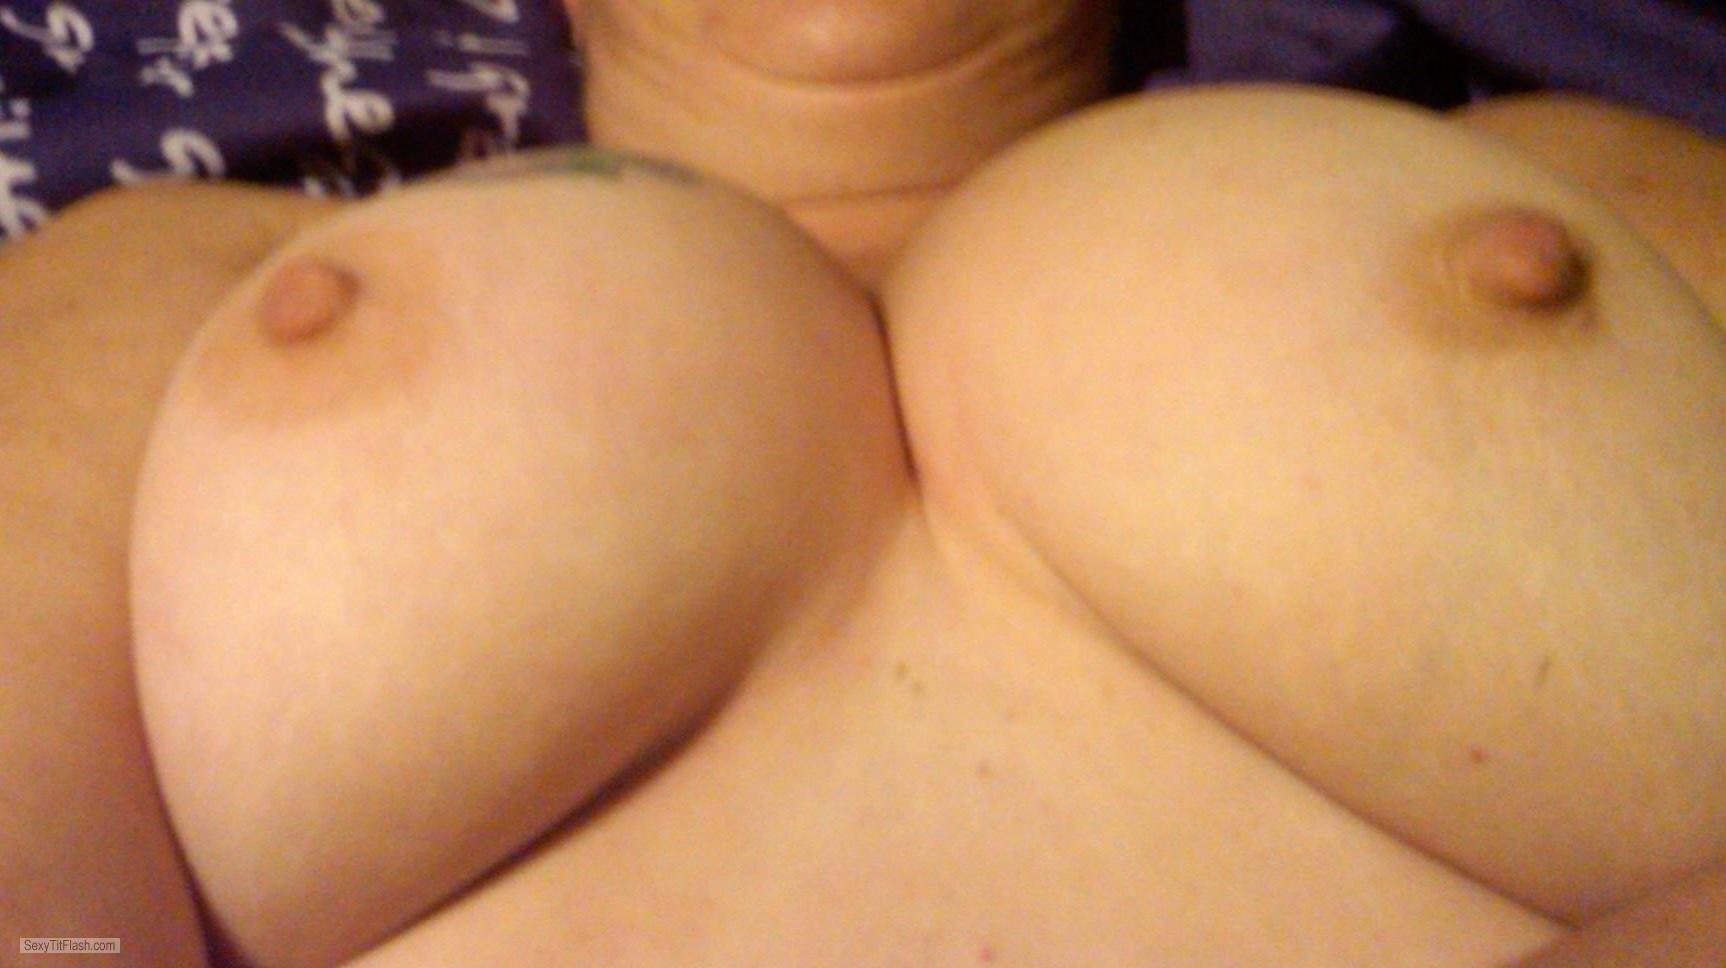 Very big Tits Of A Friend Selfie by NipLip